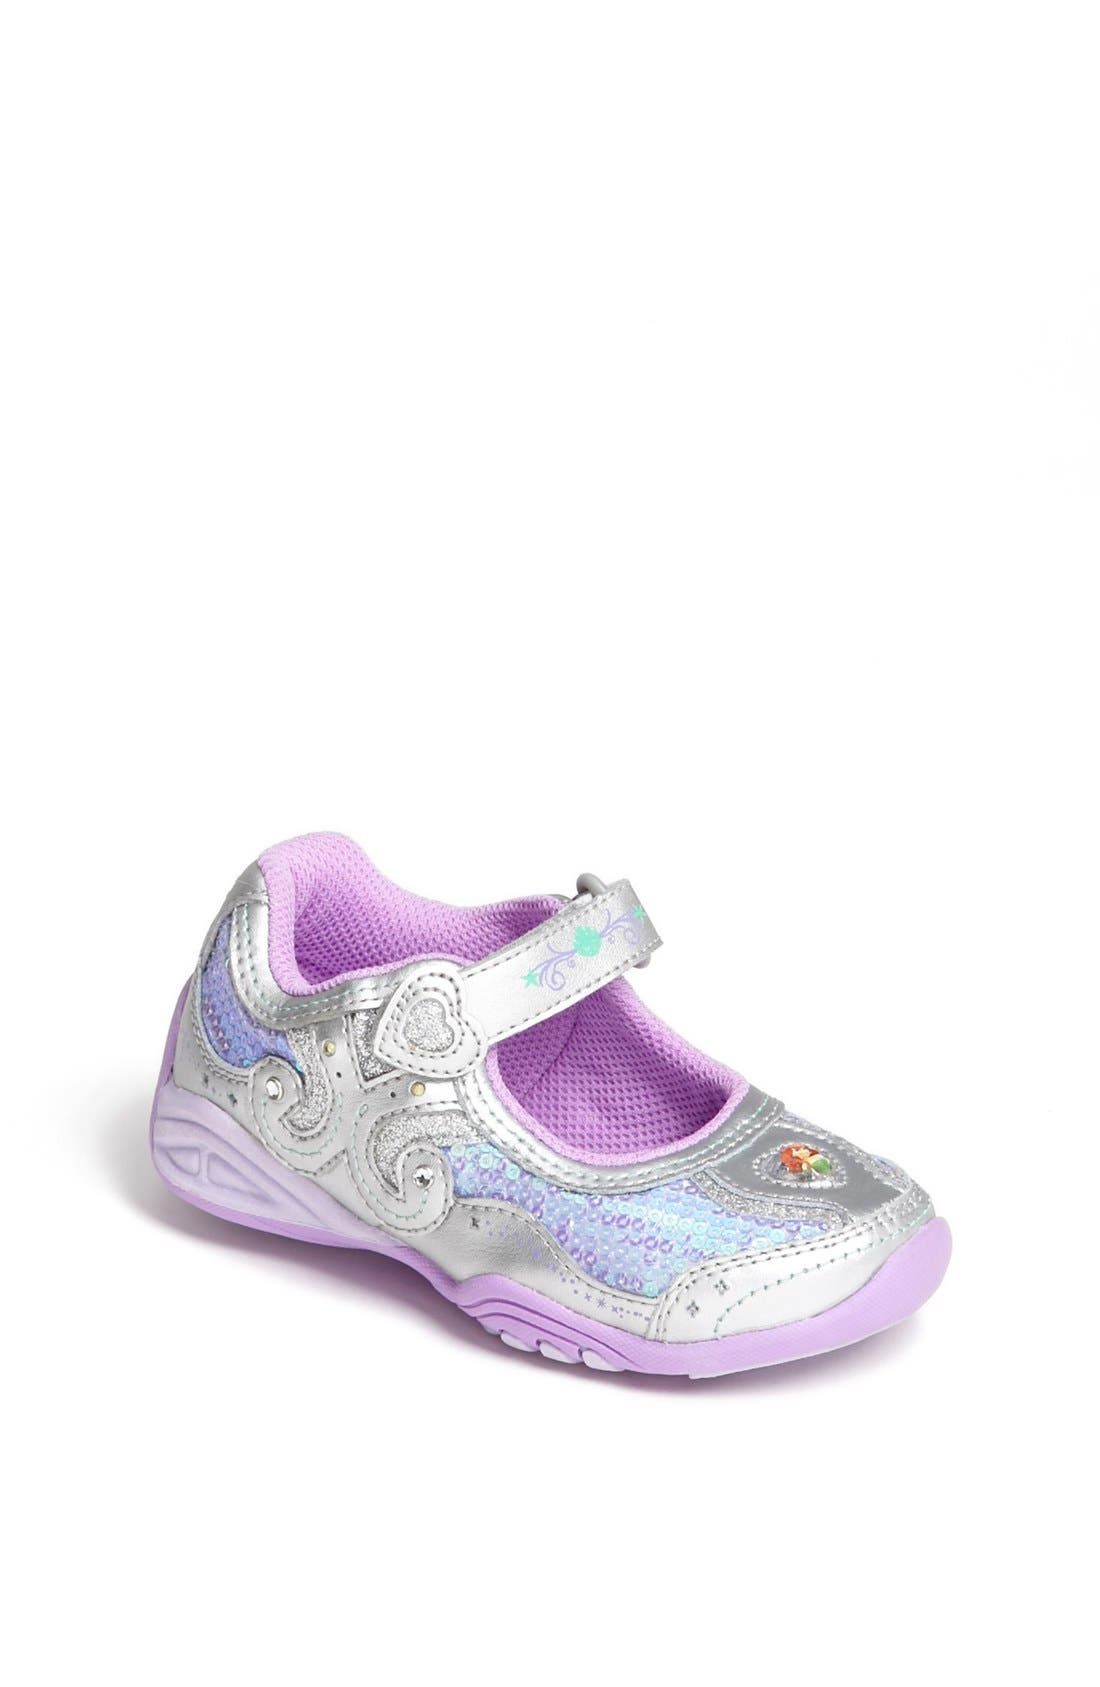 Alternate Image 1 Selected - Stride Rite 'Disney Wish Lights  - Ariel'  Sneaker (Toddler & Little Kid)